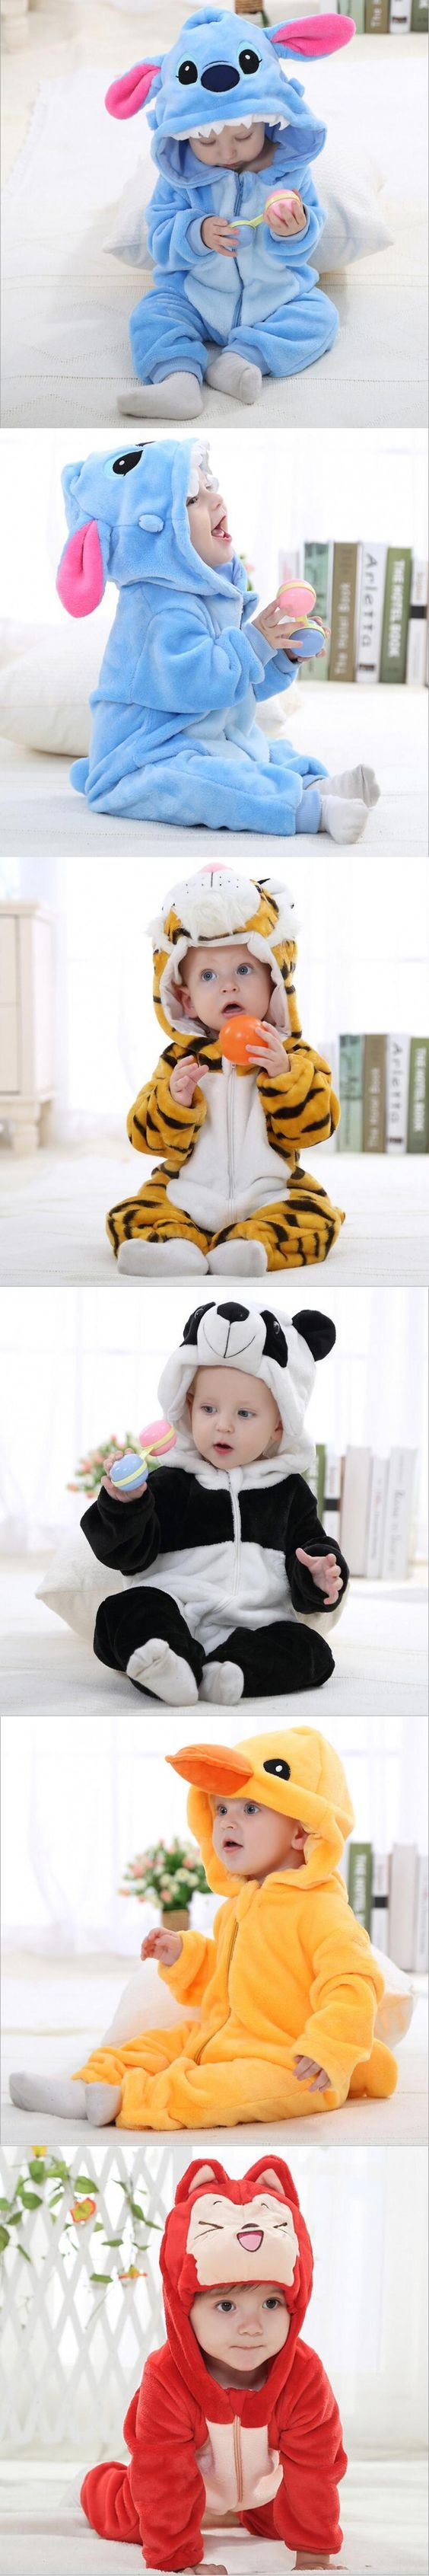 I want the stitch one for my future baby so bad! Baby and mommy would be matching!! :)